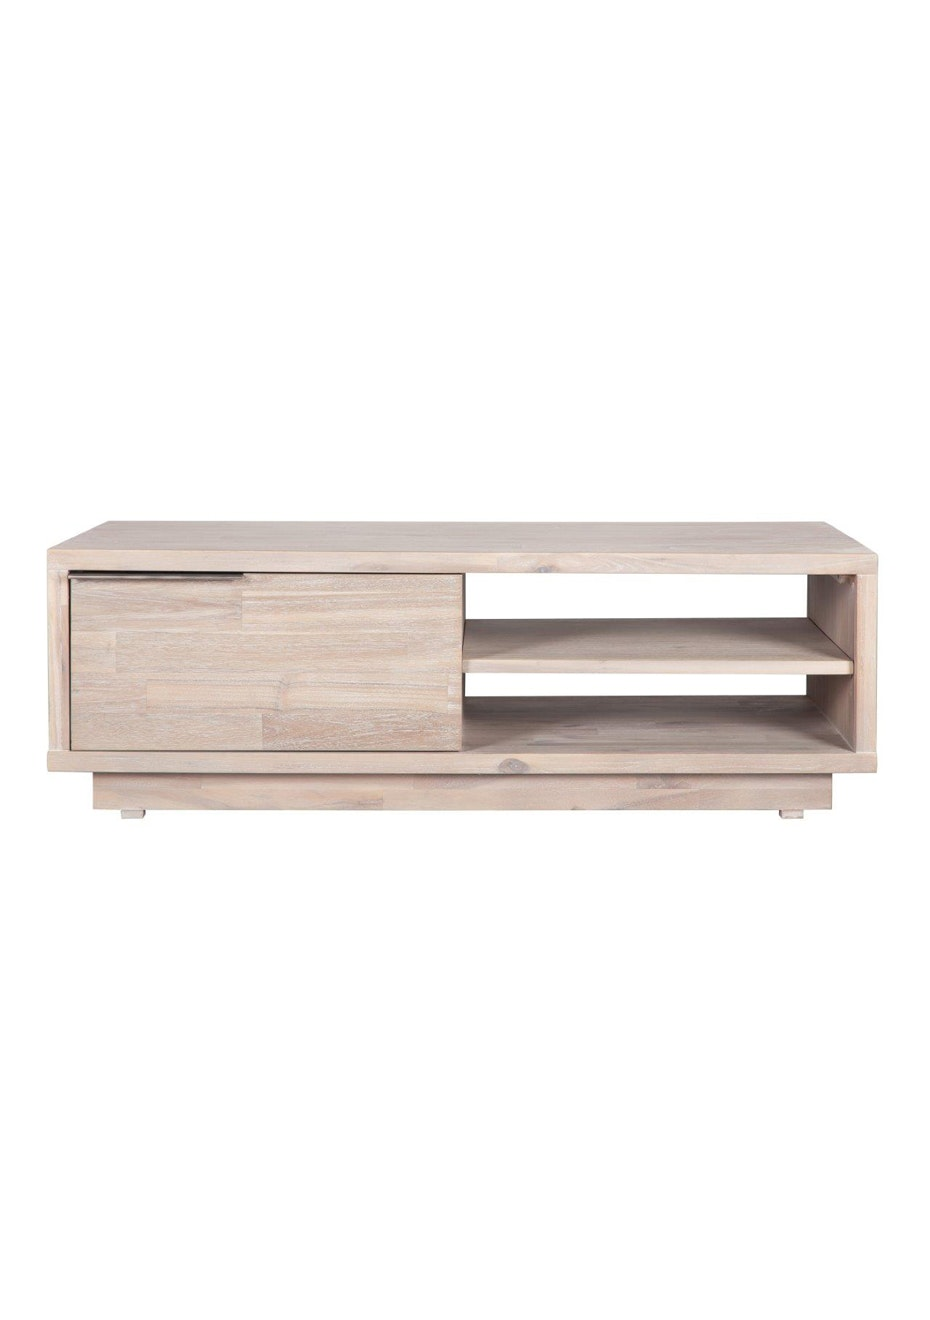 Furniture By Design - Soli Coffee Table